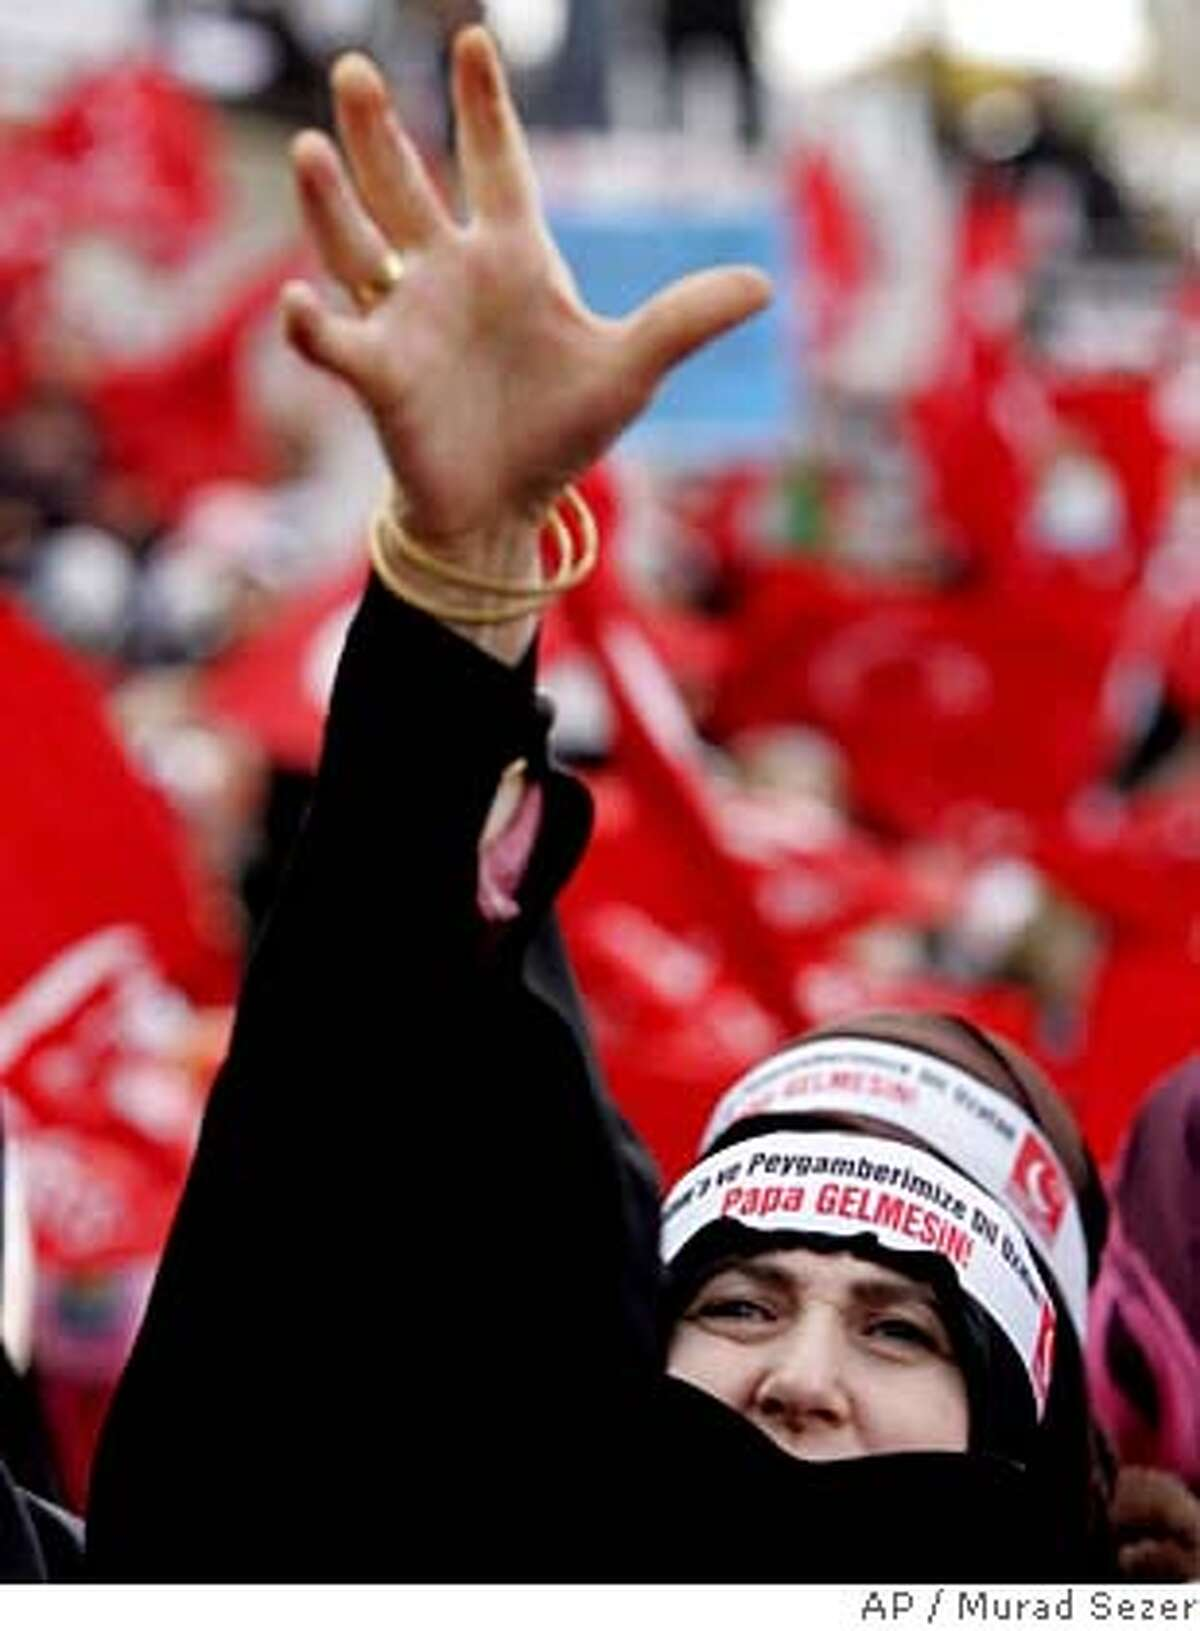 """A Turkish woman, wearing a headband that reads:""""The ignorant and sneaky pope who insulted Islam and our Prophet should not come to Turkey"""", chants Islamic slogans during an anti-pope rally in Istanbul, Turkey, Sunday, Nov. 26, 2006. Thousands of Turks gathered in an Istanbul square to protest against the upcoming visit of Pope Benedict XVI, planned for Tuesday, to this predominantly Muslim country. (AP Photo/Murad Sezer)"""